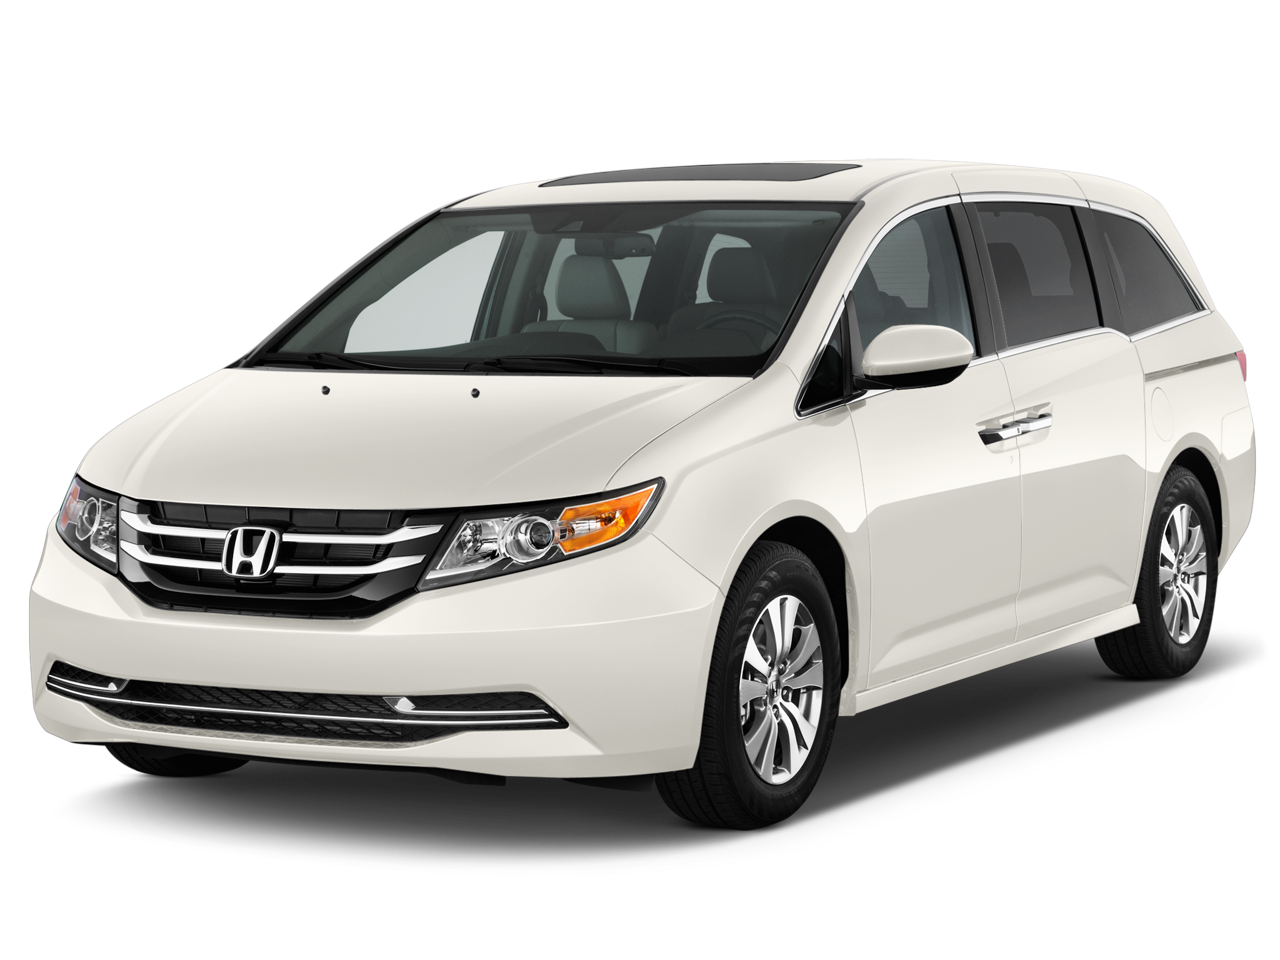 New odyssey between 0 miles and 1 000 miles for sale for 2016 honda odyssey colors